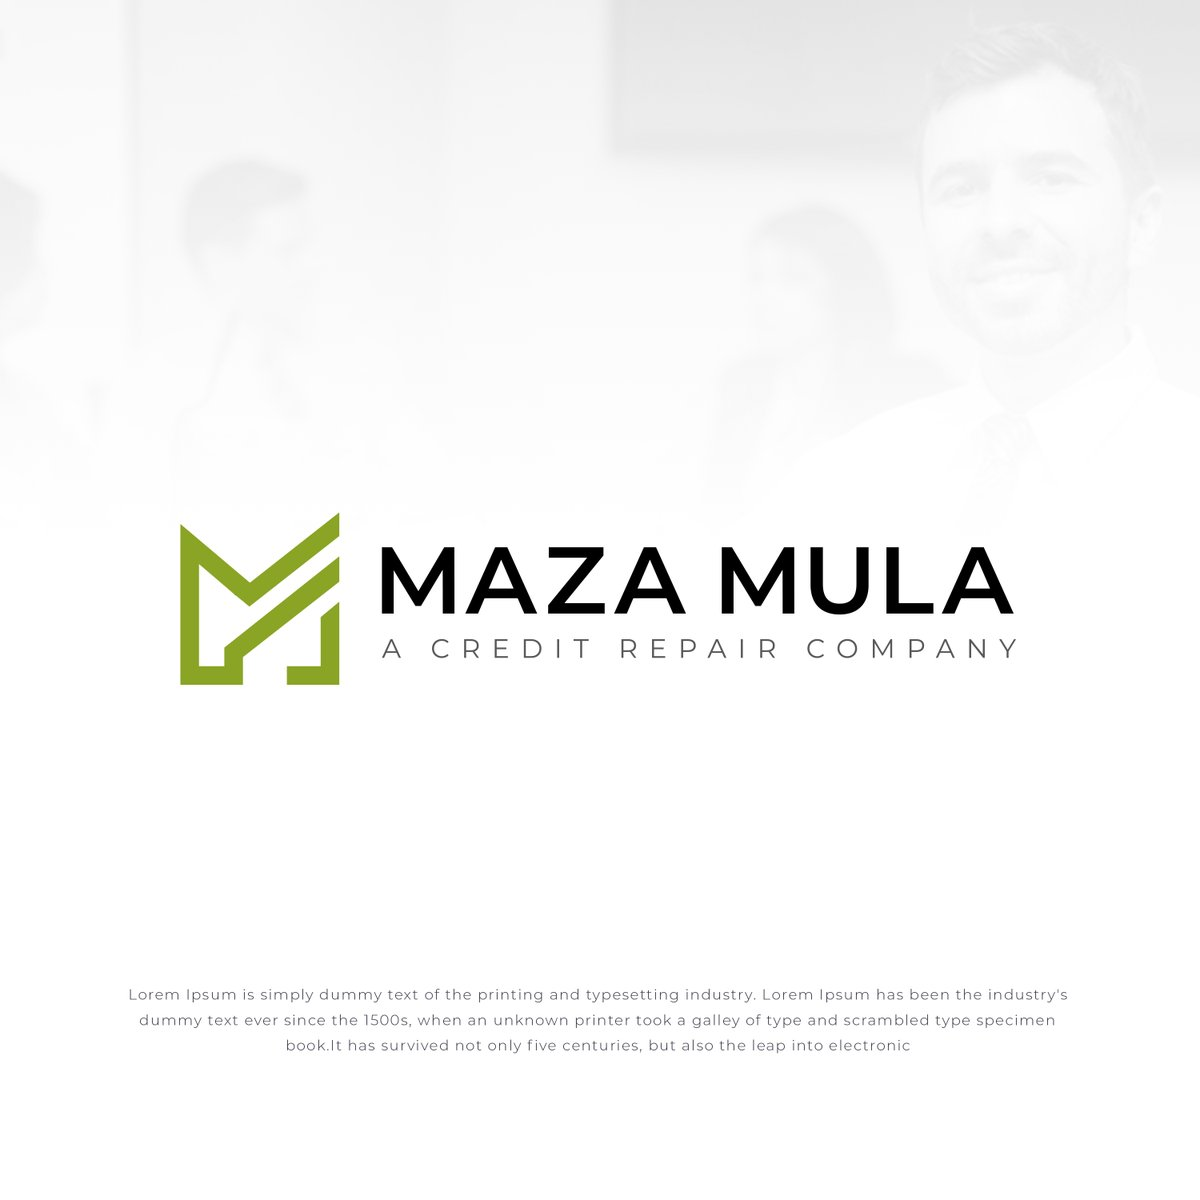 Abu Sayed Hosin On Twitter Logo Design For A Credit Repair Company Called Maza Mula They Provide Personal Credit Repair Business Funding And Business Credit Need Custom Logo Dm Me Logo